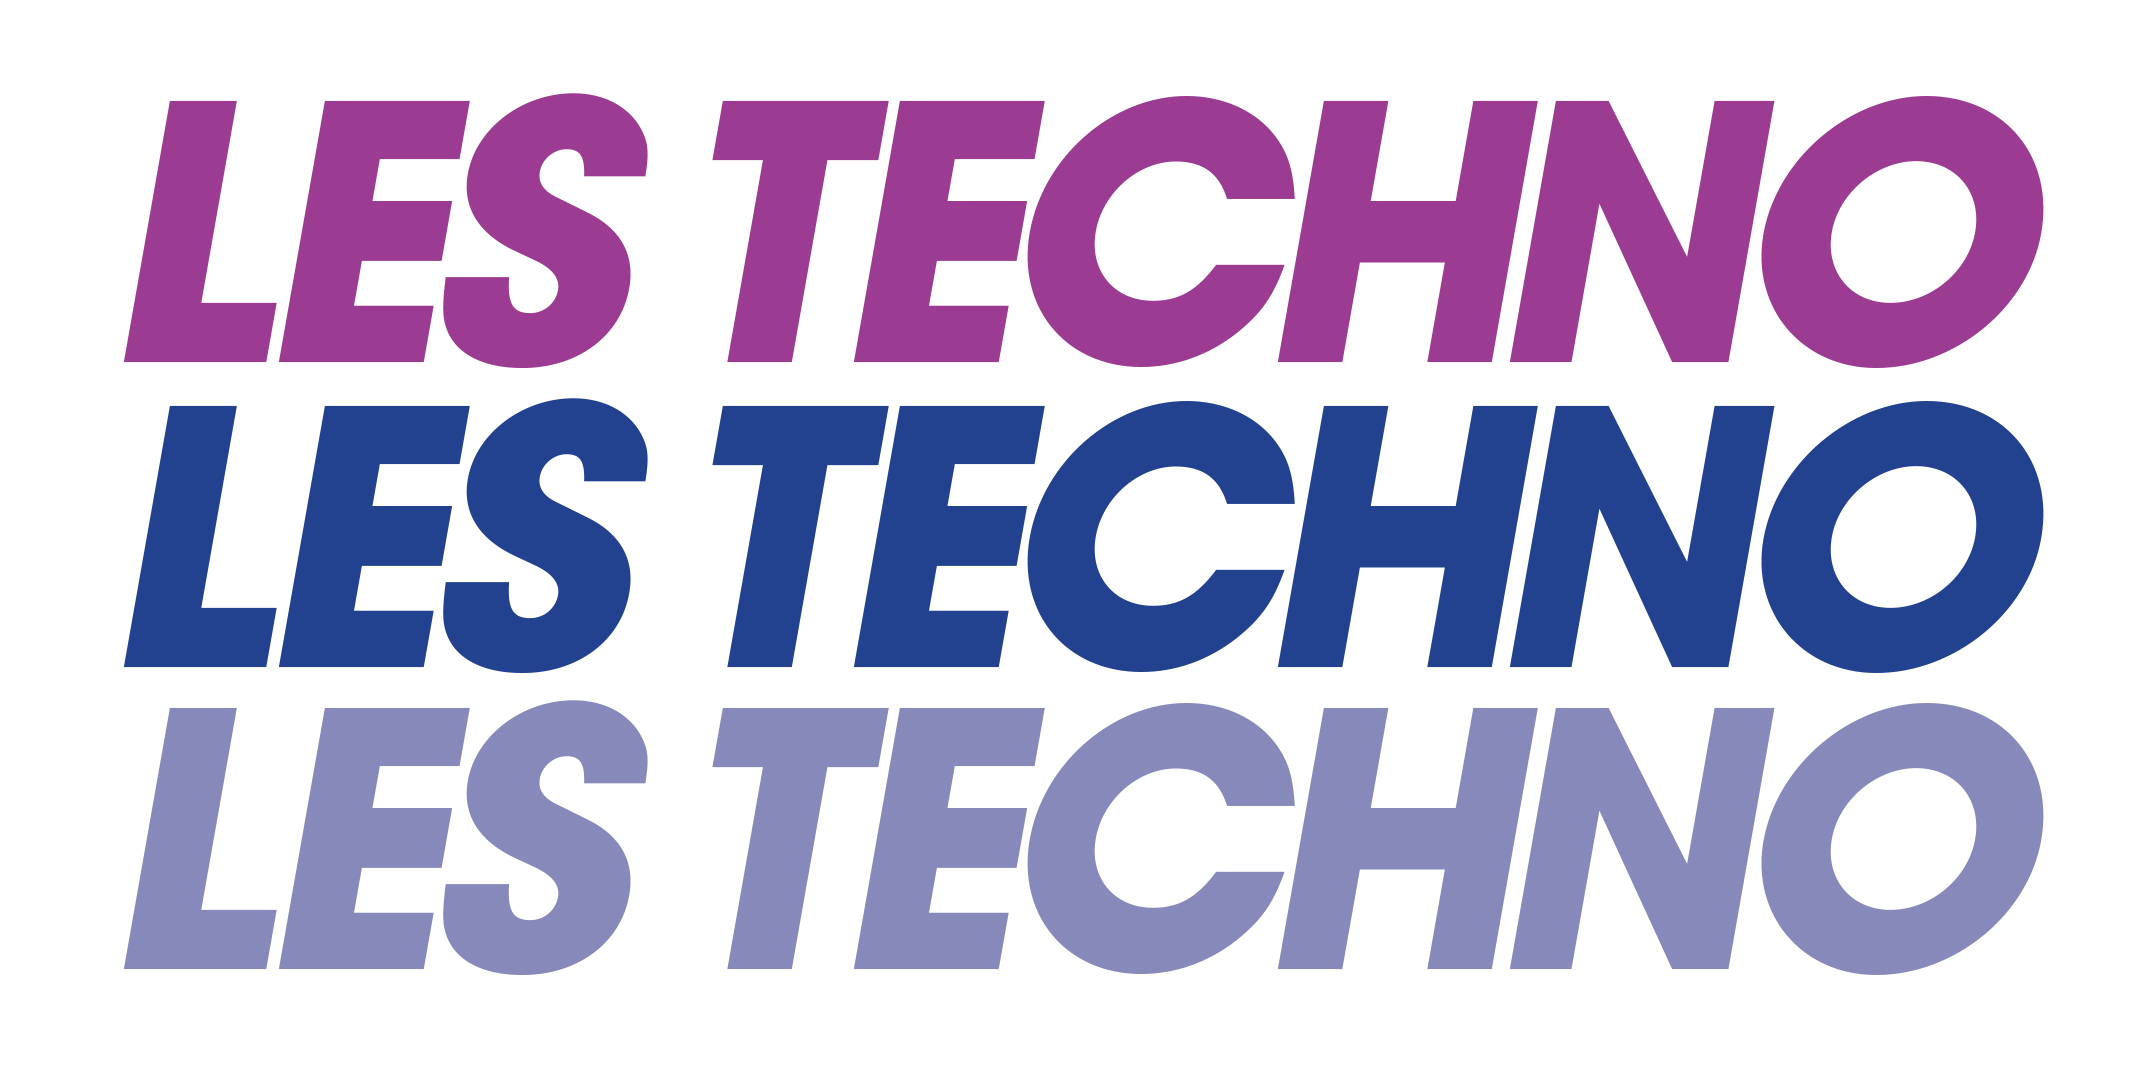 Les techno Web page Header 2